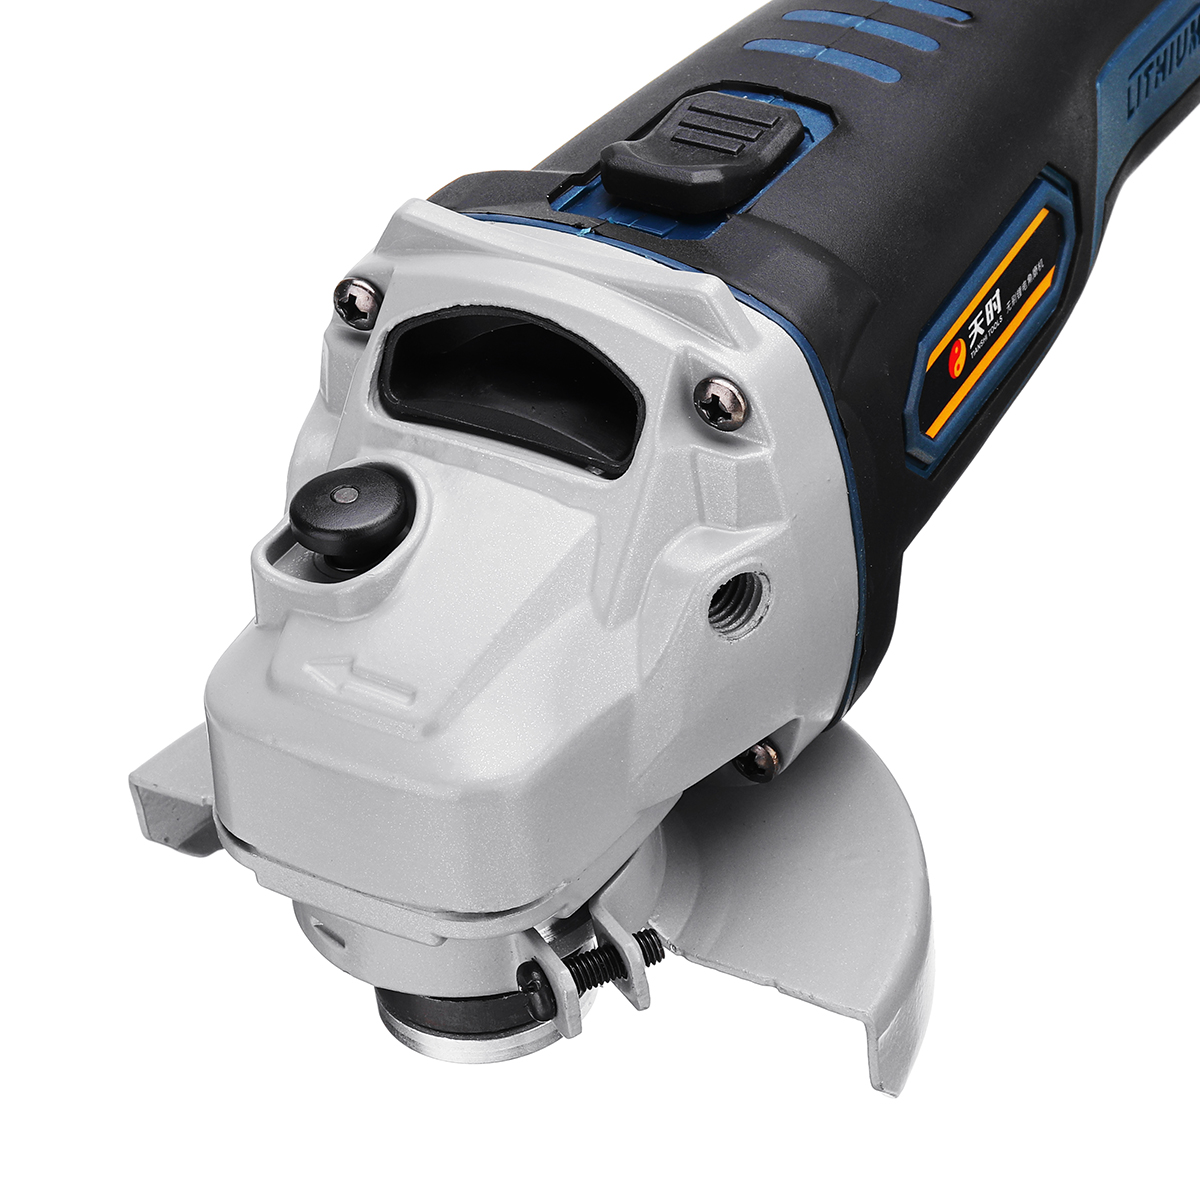 108VF 20000mA Rechargeable Cordless Eectric Angle Grinder Set with 1Pcs or 2Pcs Li-ion Batteries